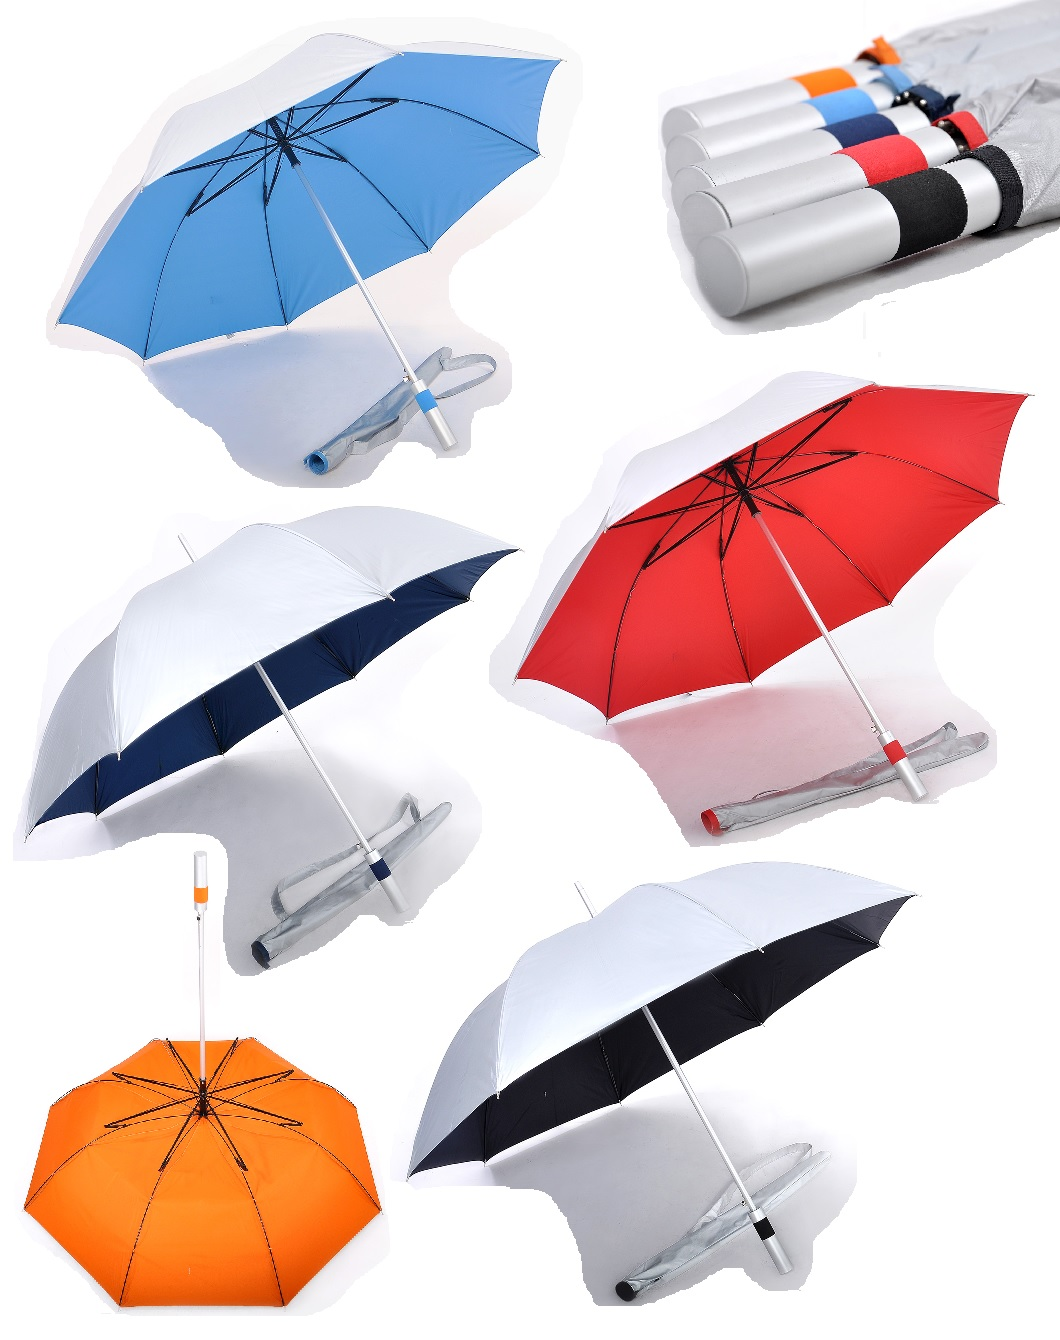 27inch Lightweight Umbrella with UV coating